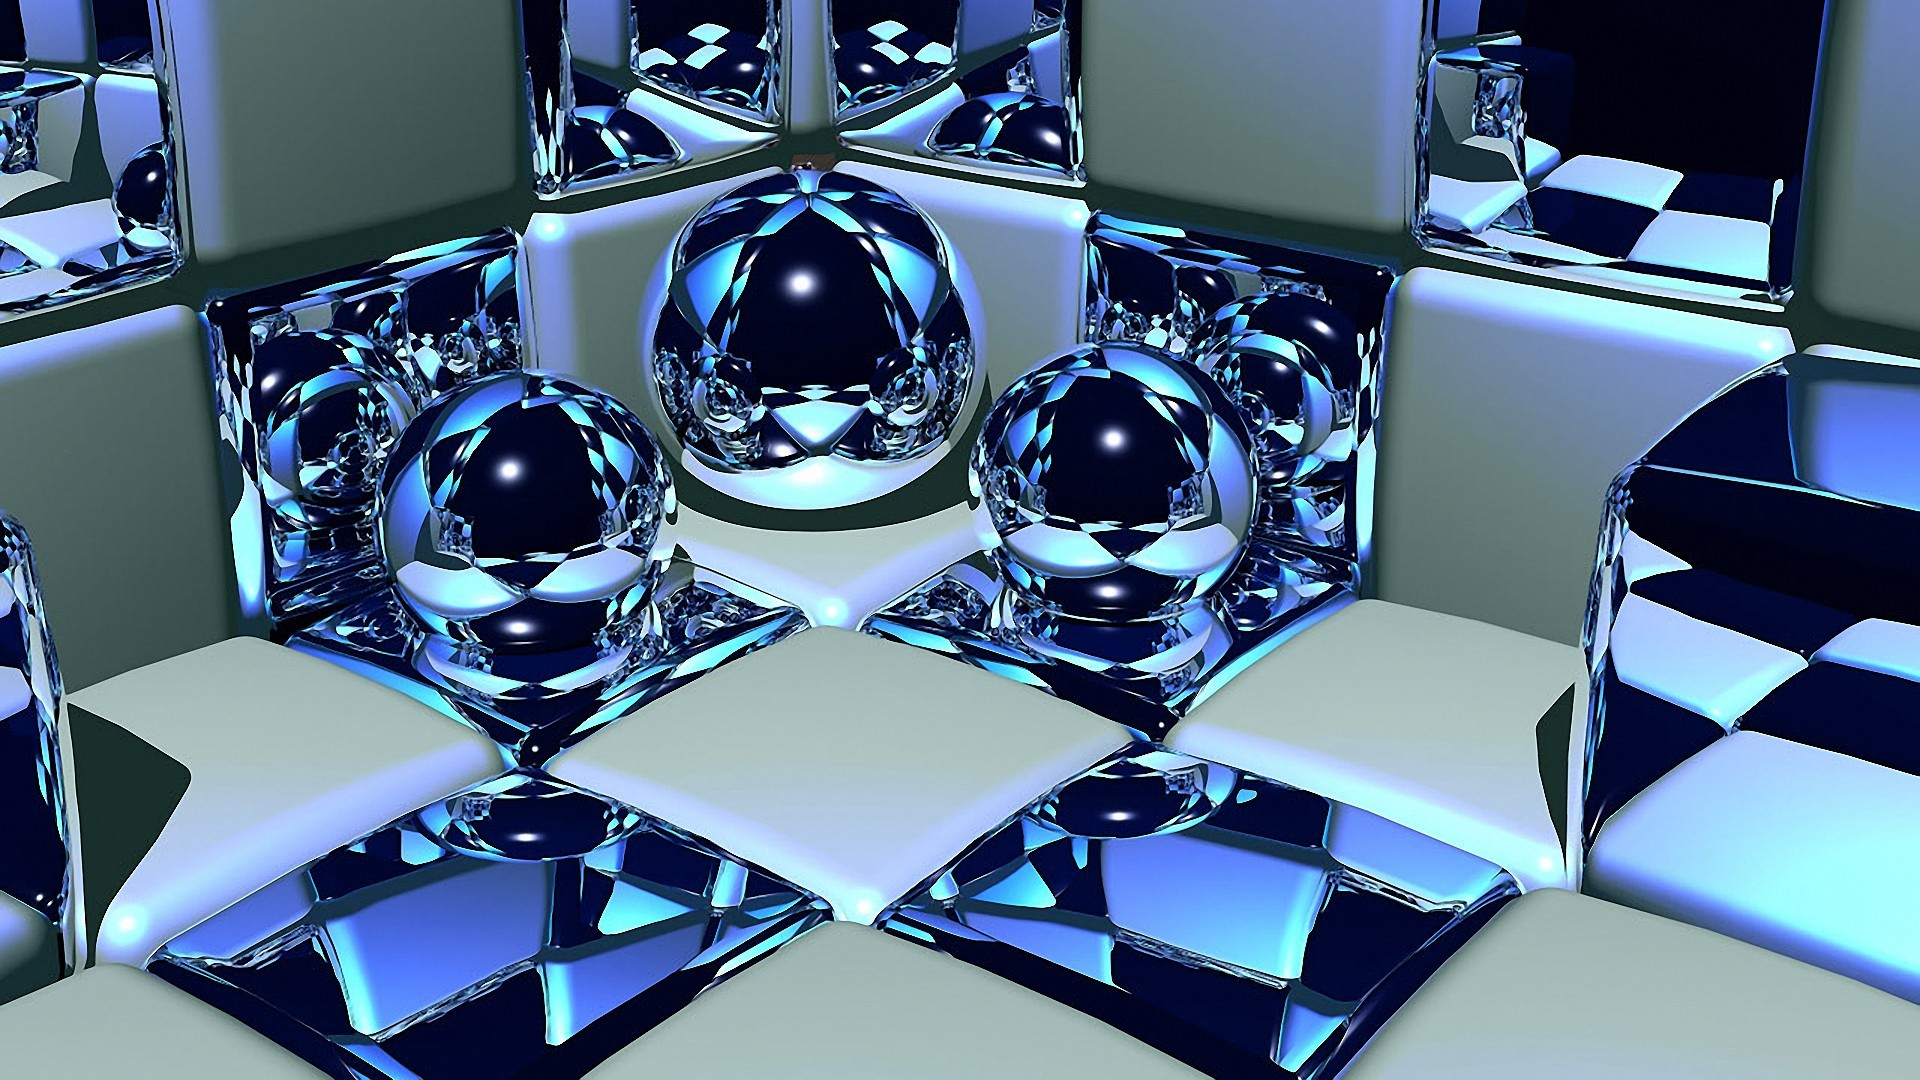 3d Cubes And Balls 6 Wallpaper Background Hd With Resolutions 1920 1920x1080